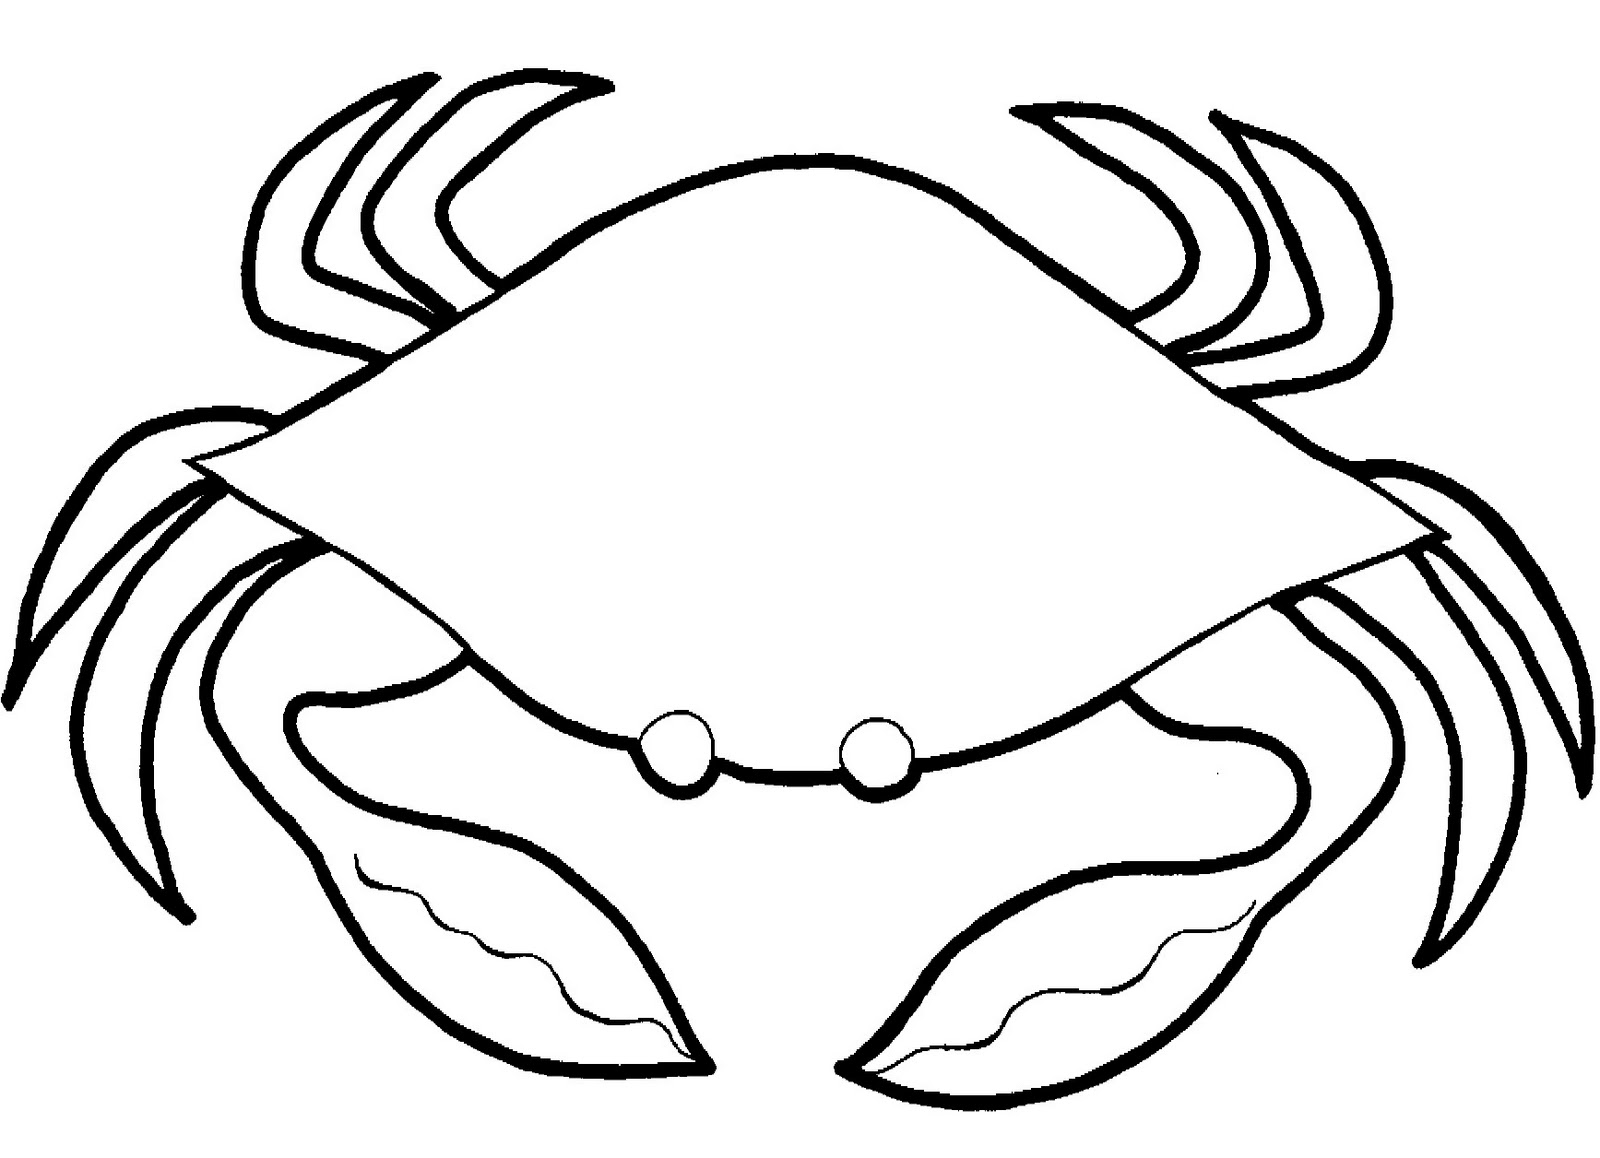 tcrab coloring pages - photo#4